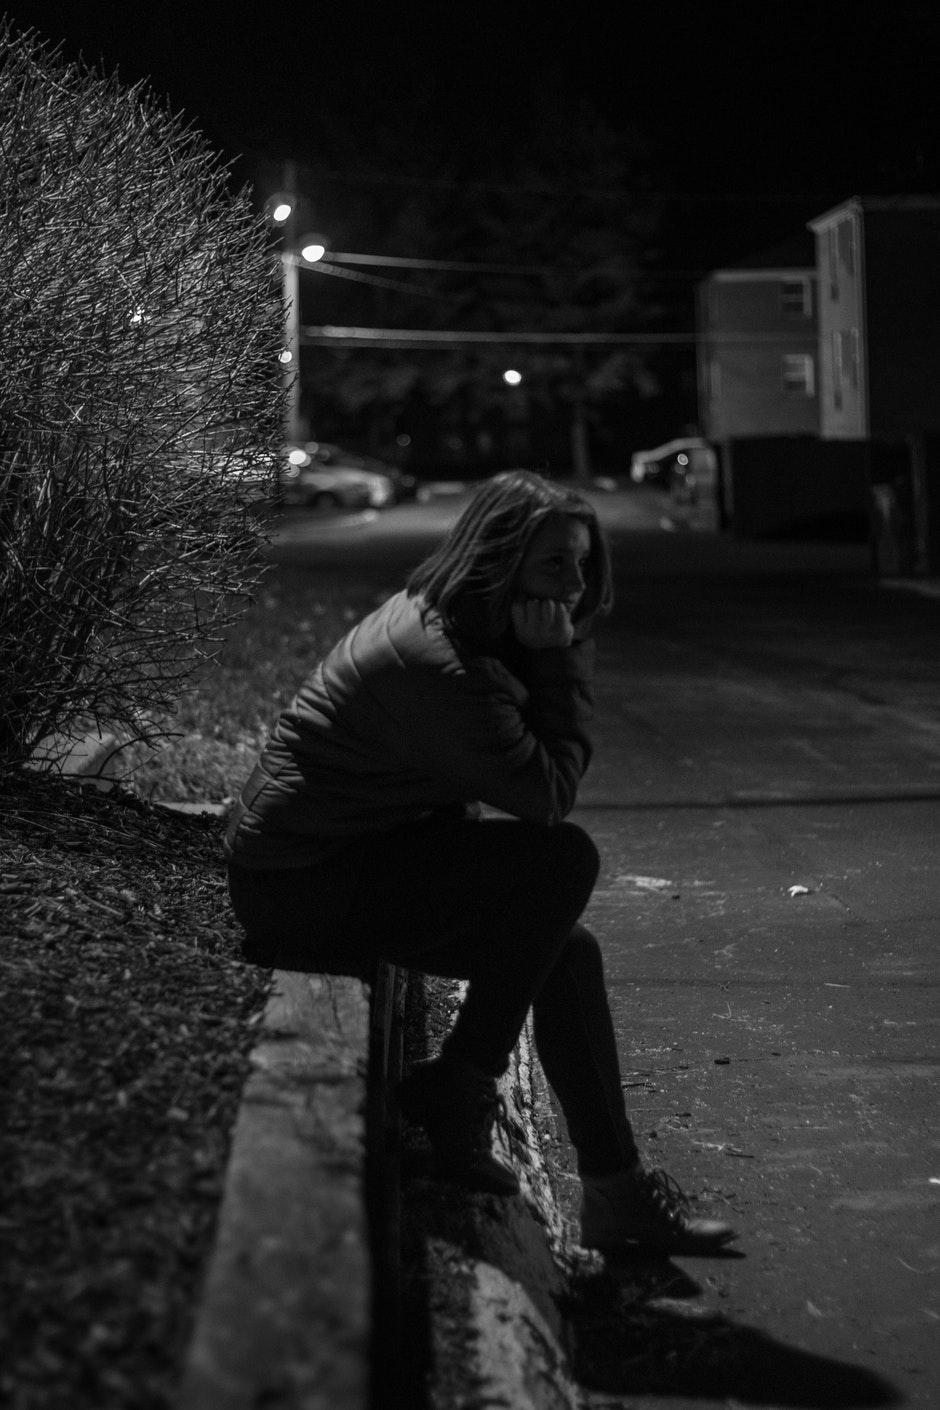 Woman Wearing Jacket Sitting on Concrete during Night Time